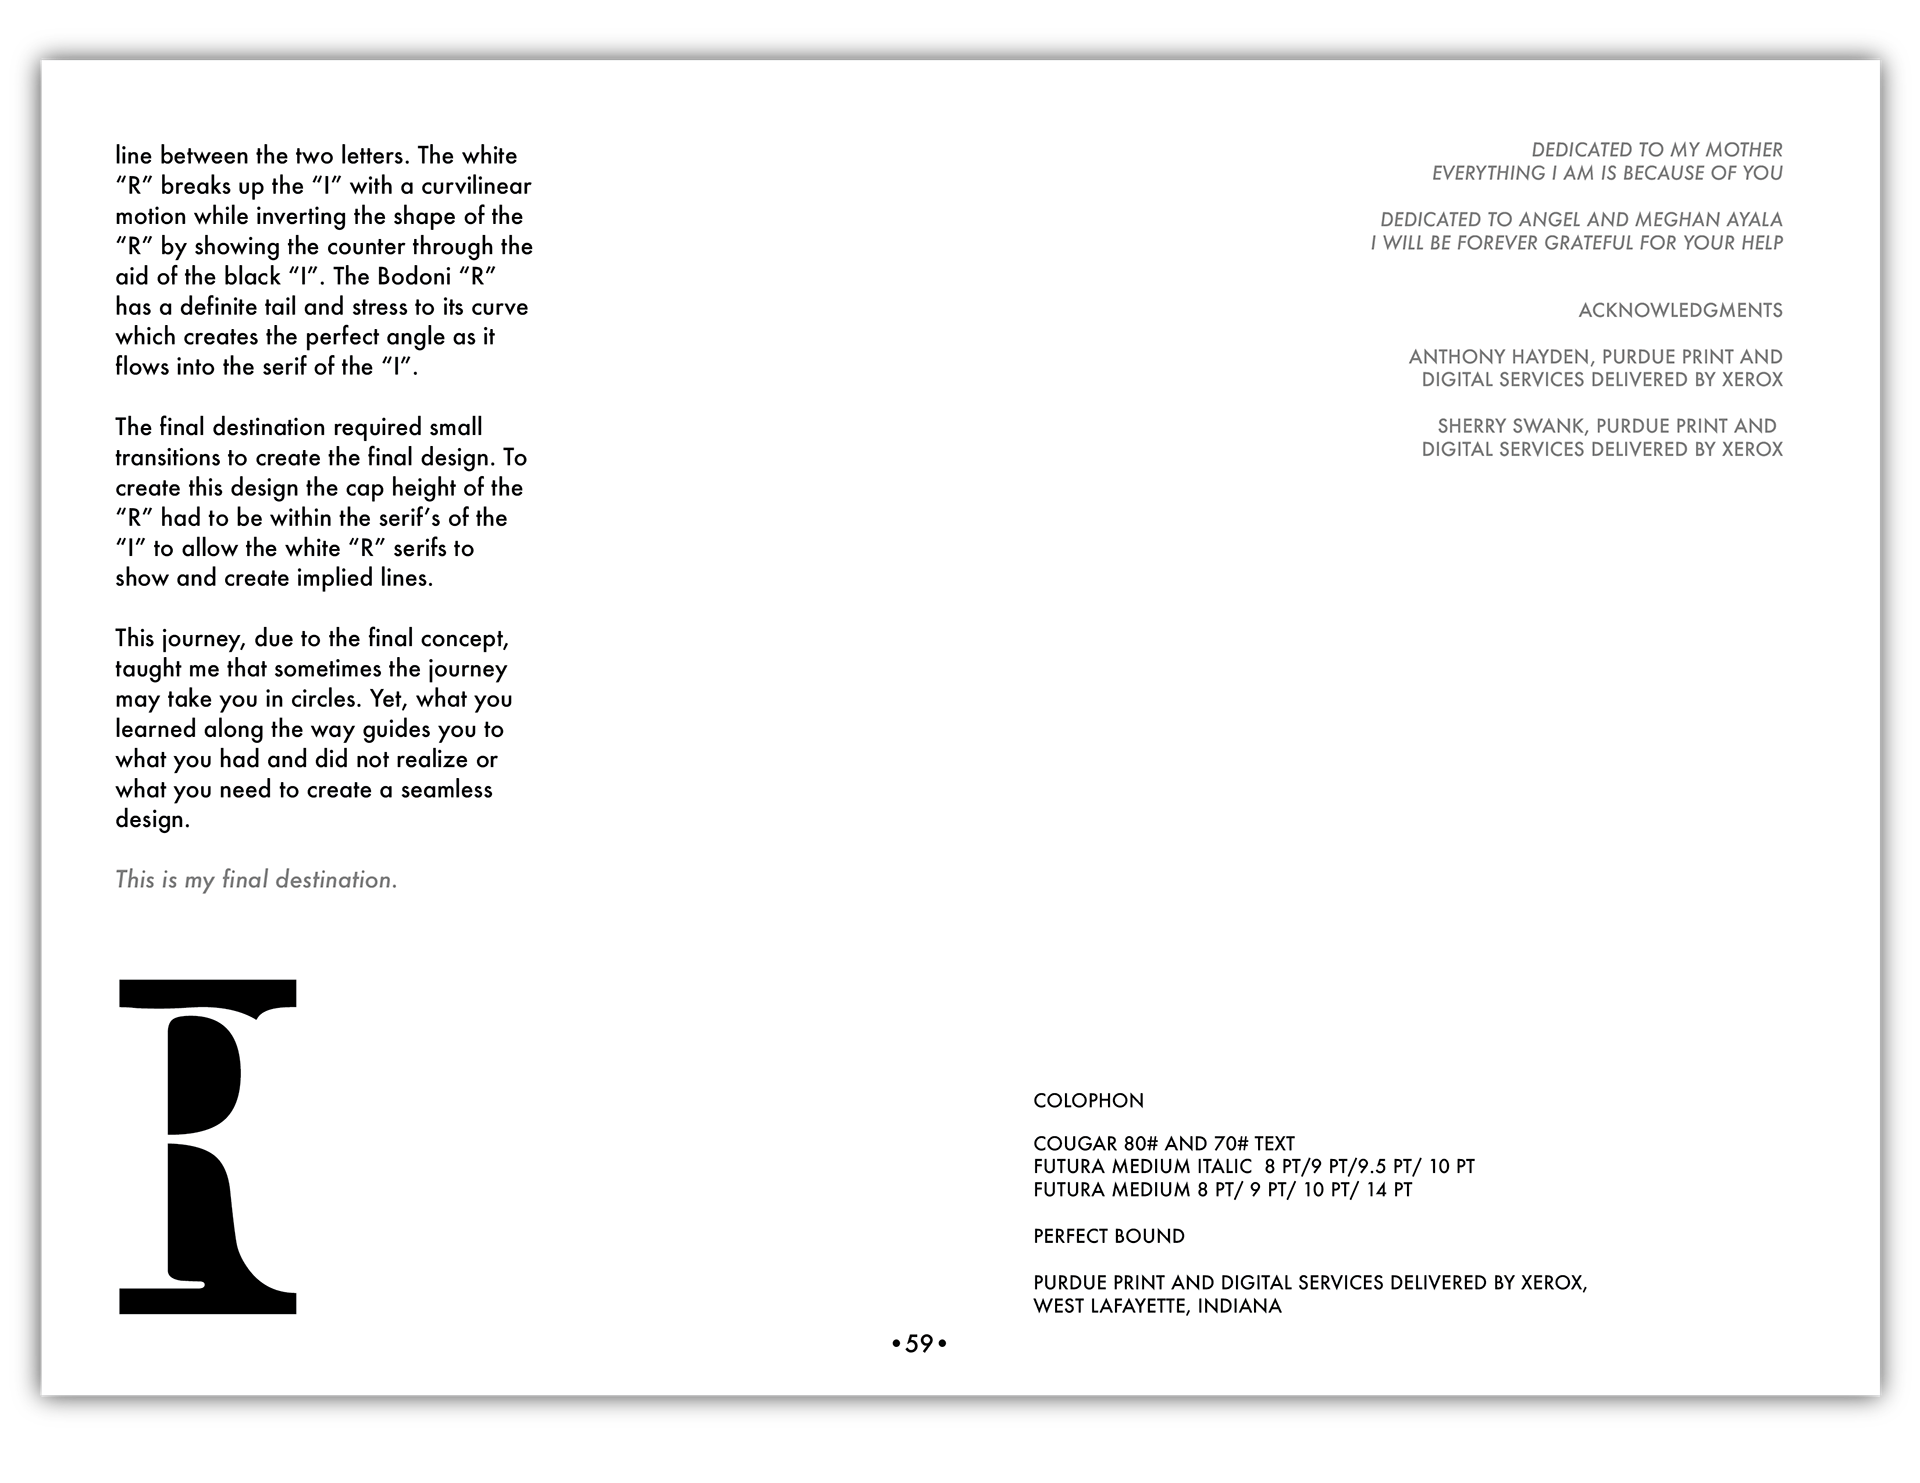 Emma Tisserand - A TYPOGRAPHIC JOURNEY: A LETTERFORM EXERCISE